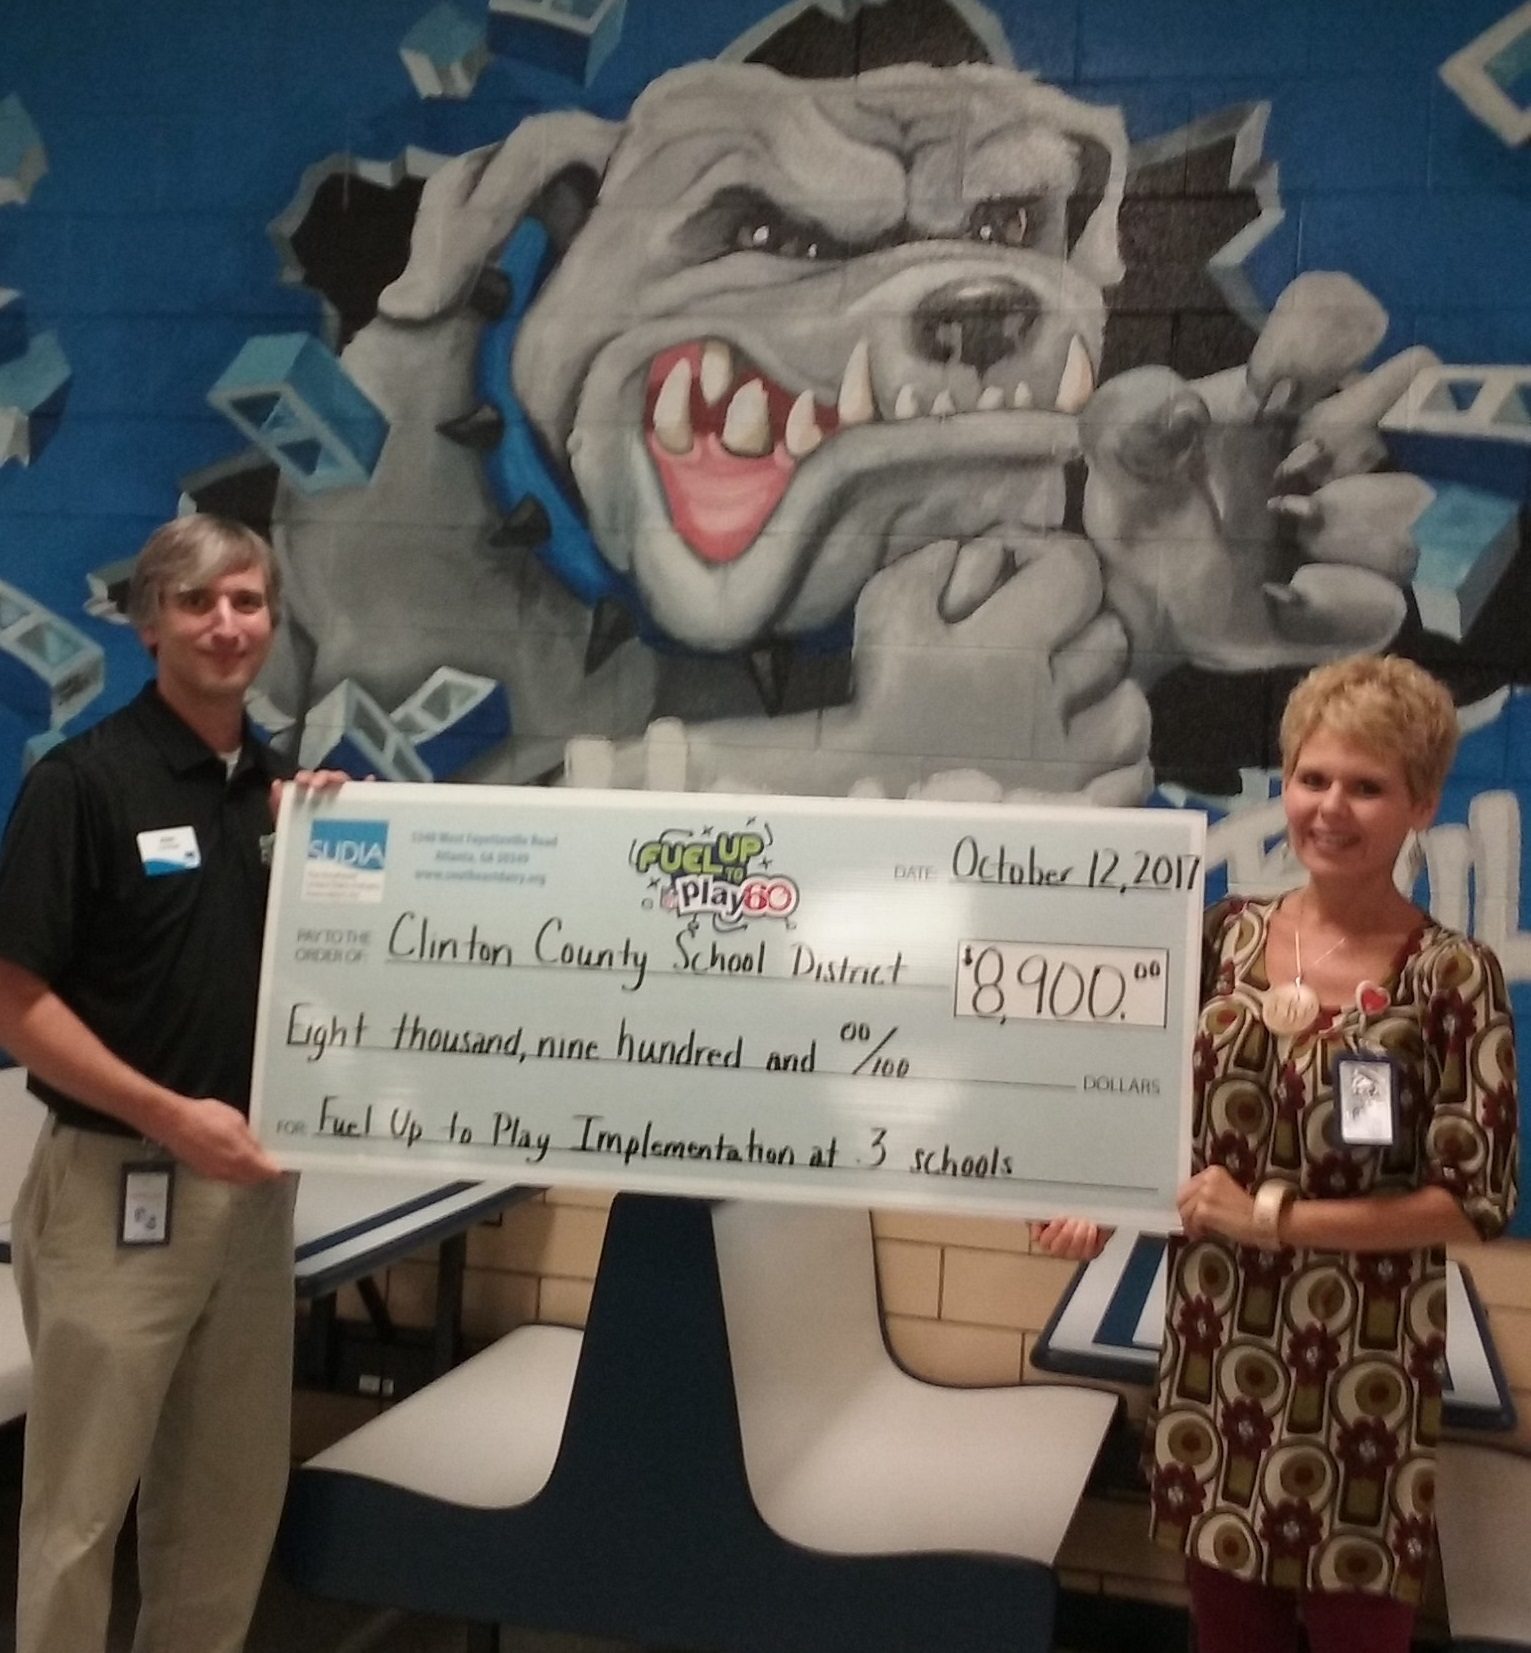 Clinton County Schools Food Service Director Paulette Brinley is pictured here with Alan Curtsinger of the Southeast United Dairy Association accepting a check in the amount of $8,900.00 from Fuel Up to Play 60.